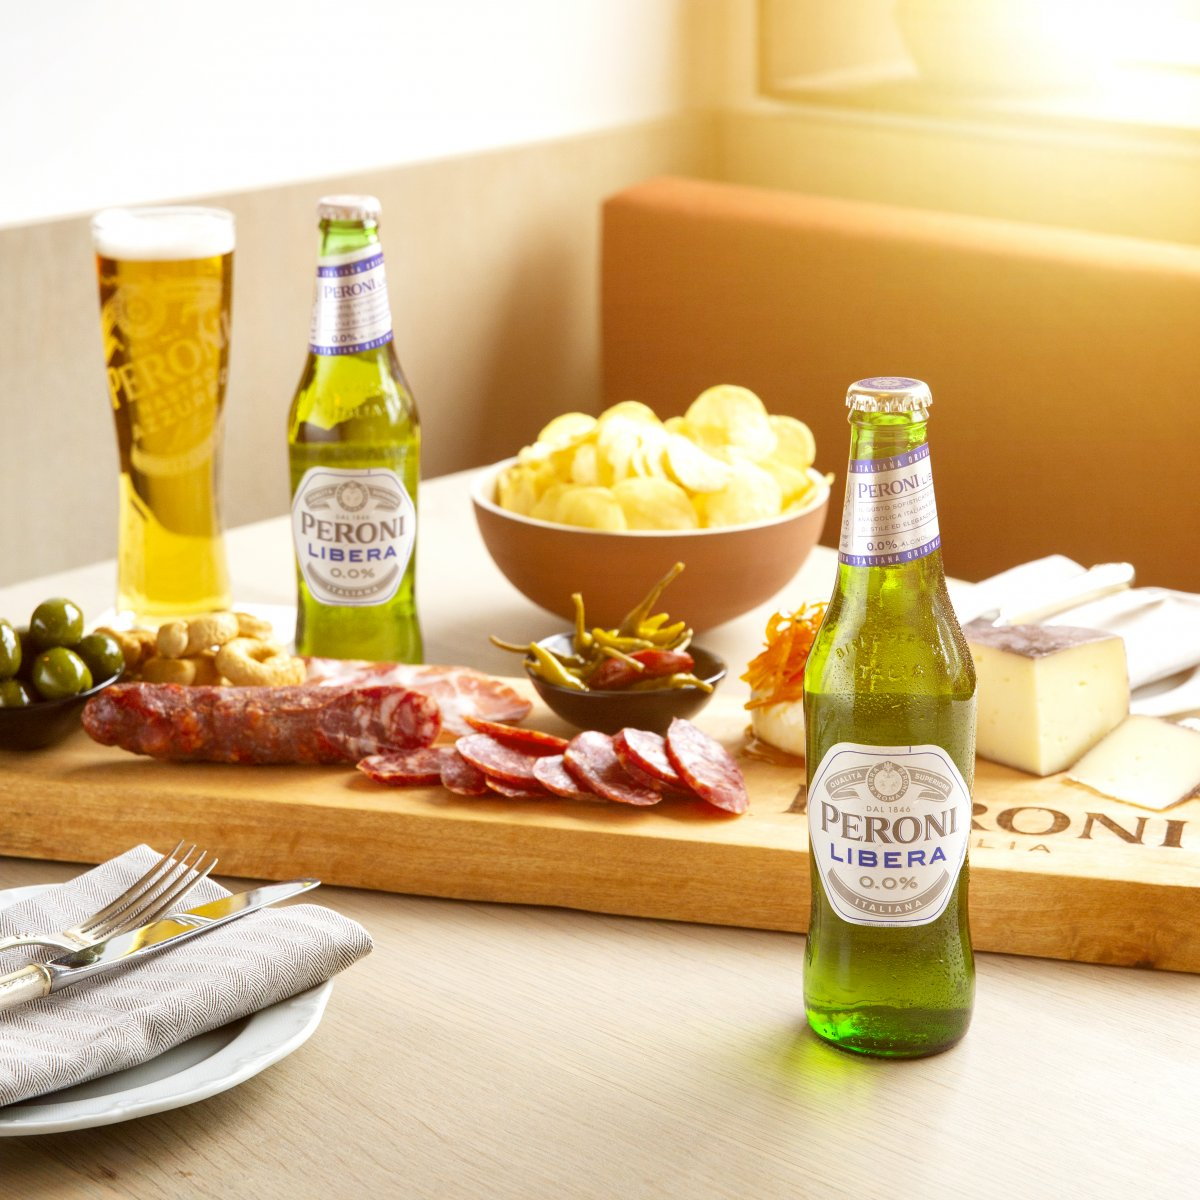 Board of assorted meats and cheeses accompanied by Peroni Libera a new non-alcoholic beer.